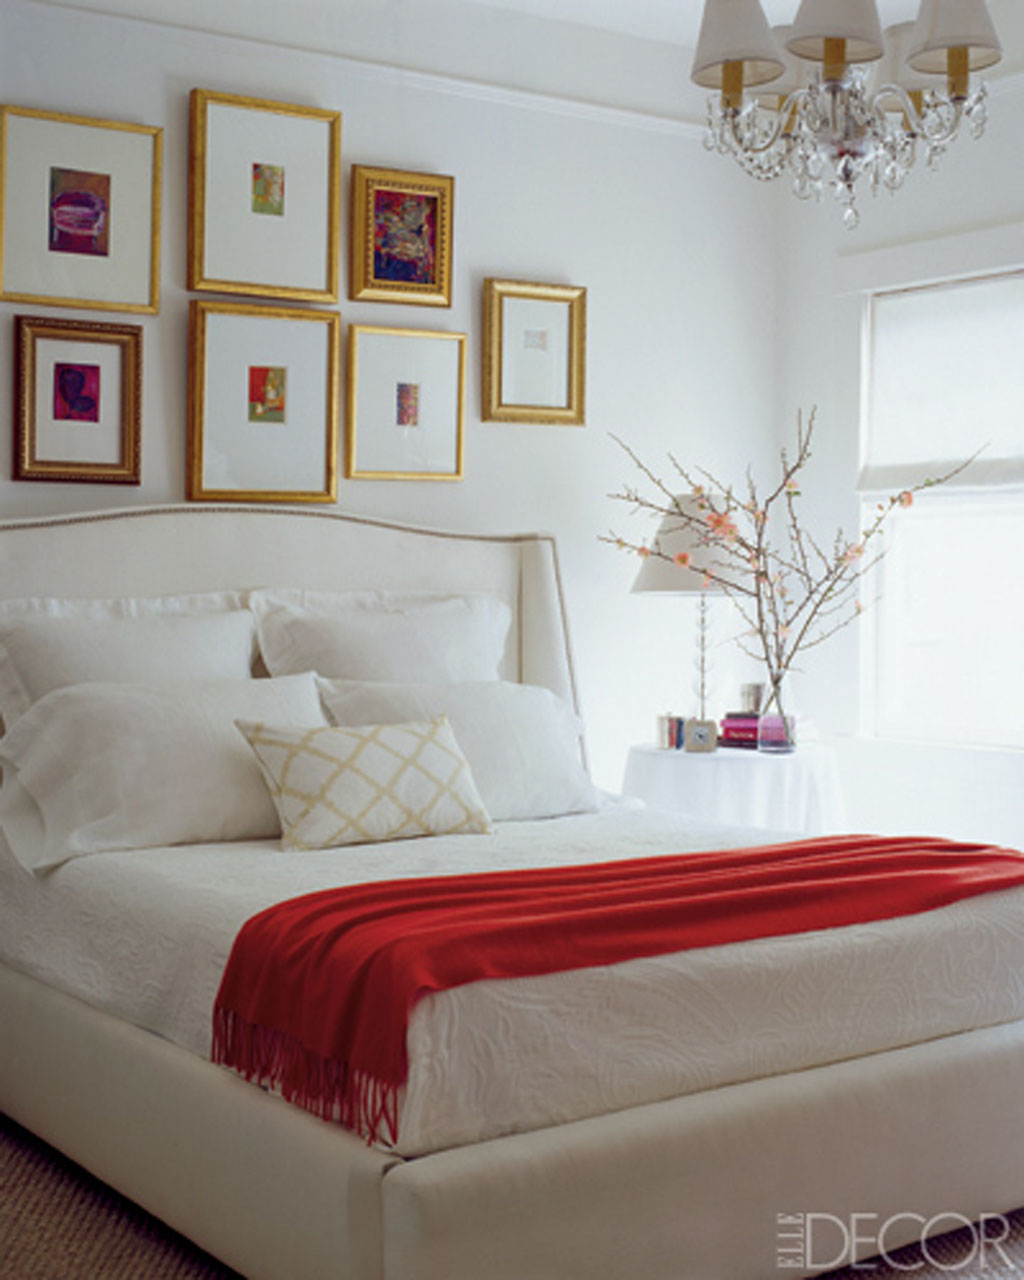 Black white and red bedroom ideas 5 small interior ideas for Bedroom ideas red